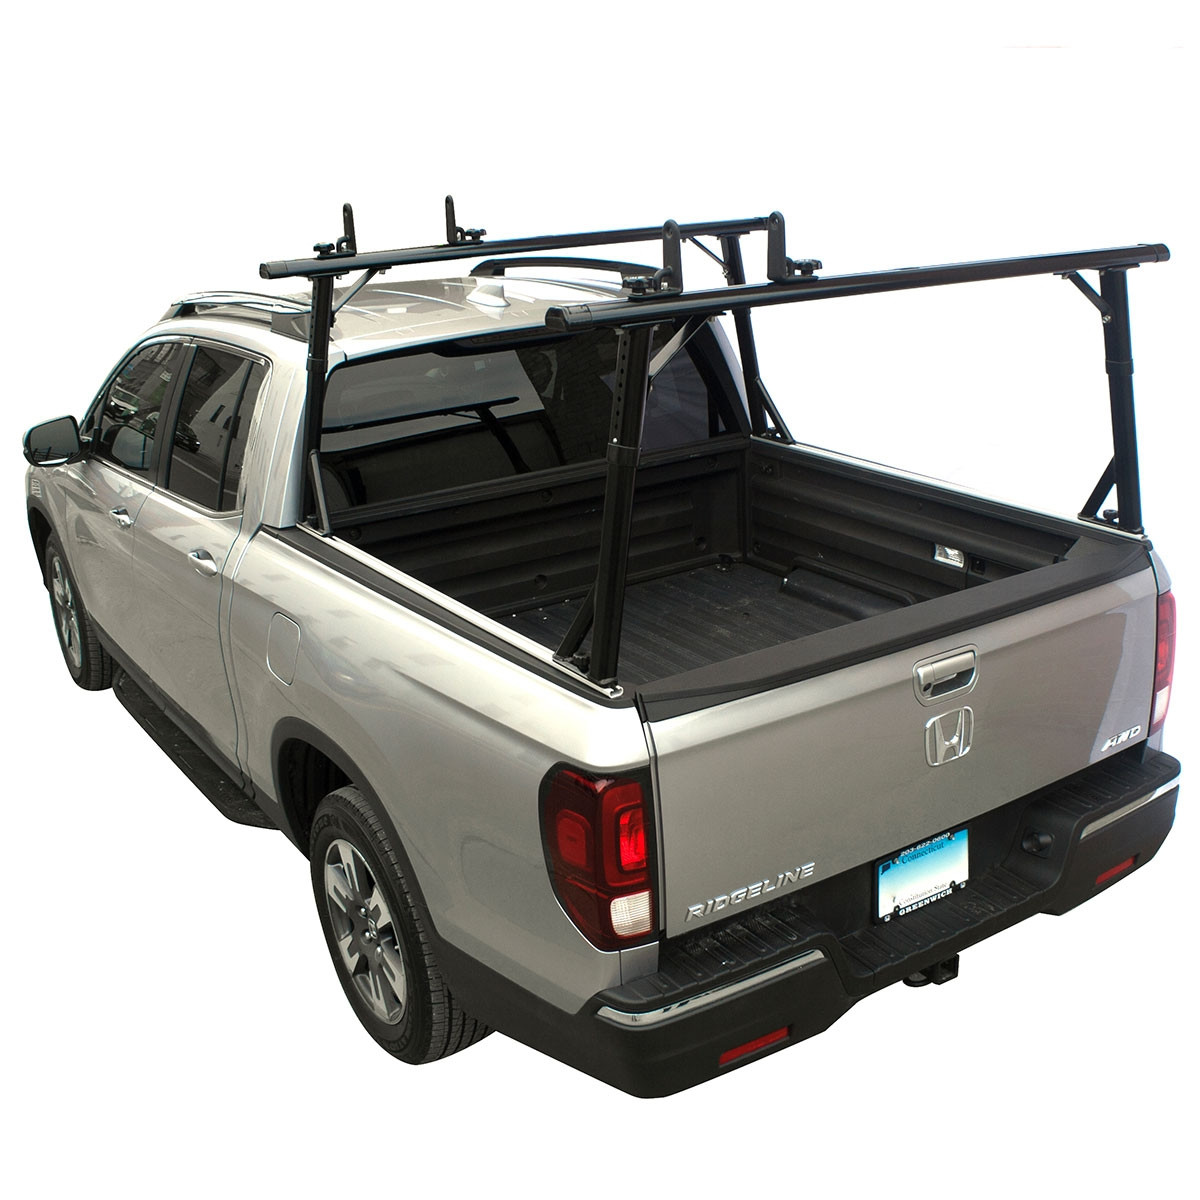 Revolver X4 Vantech Ladder Rack P3000 For Honda